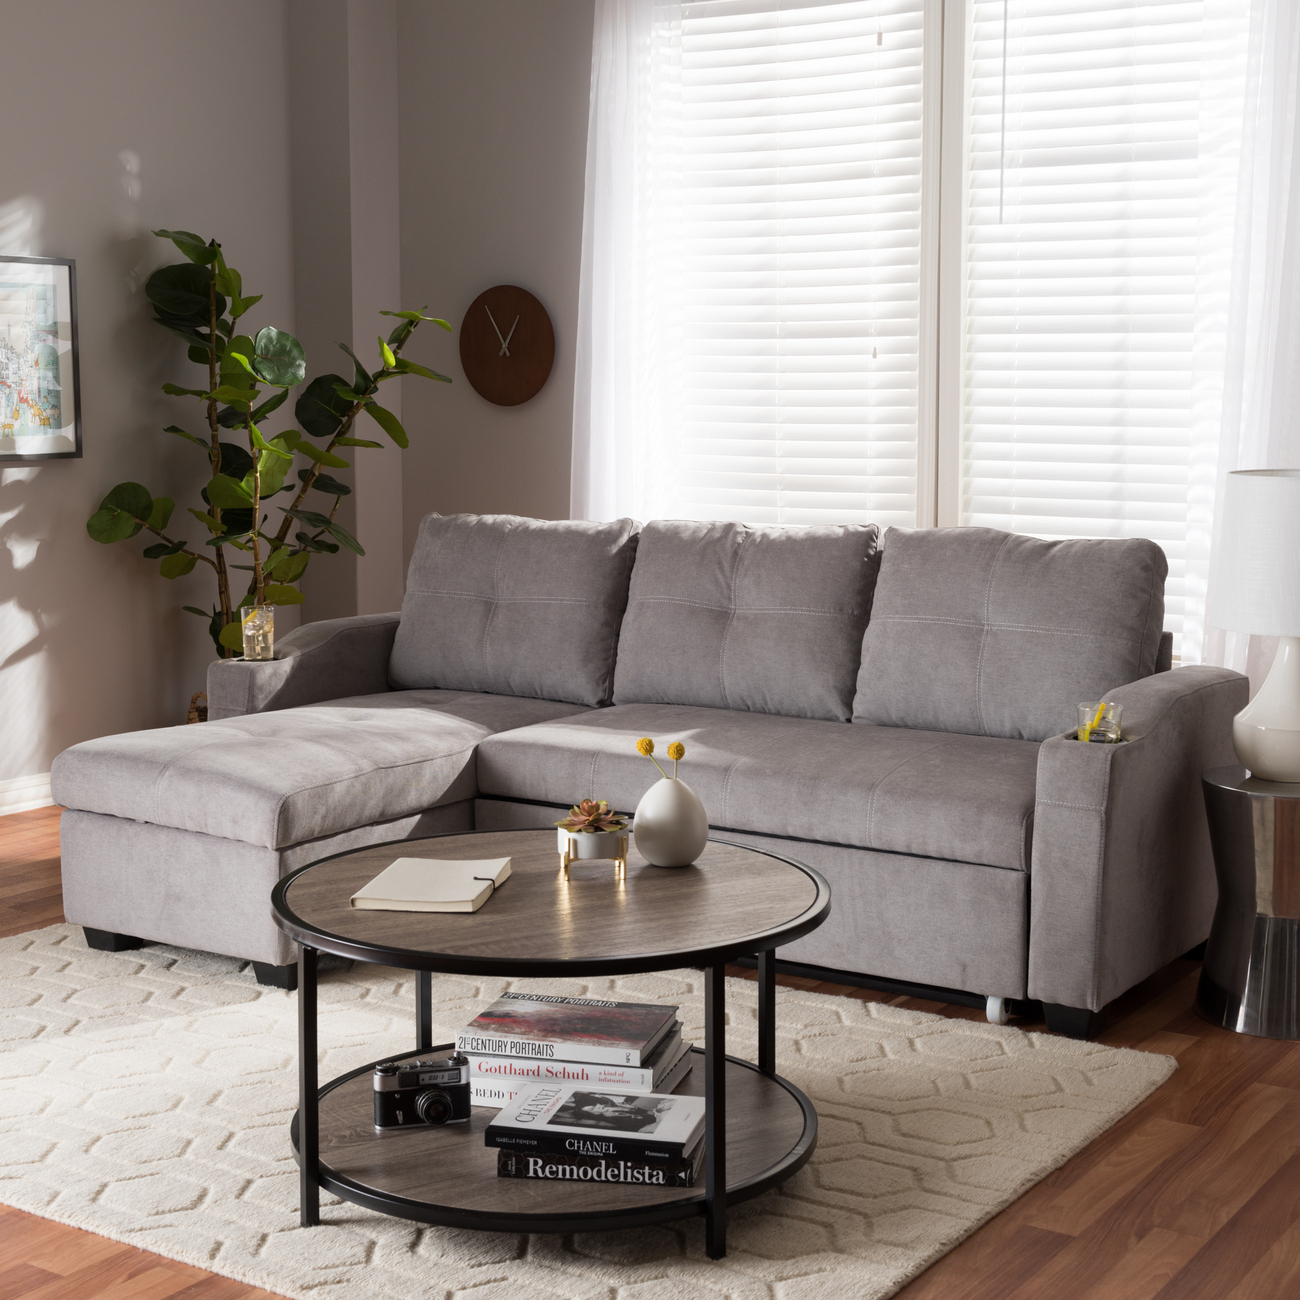 Wholesale Interiors Baxton Studio Lianna Modern and Contemporary Light Grey Fabric Upholstered Sectional Sofa - R8068-Light Grey-Rev-SF